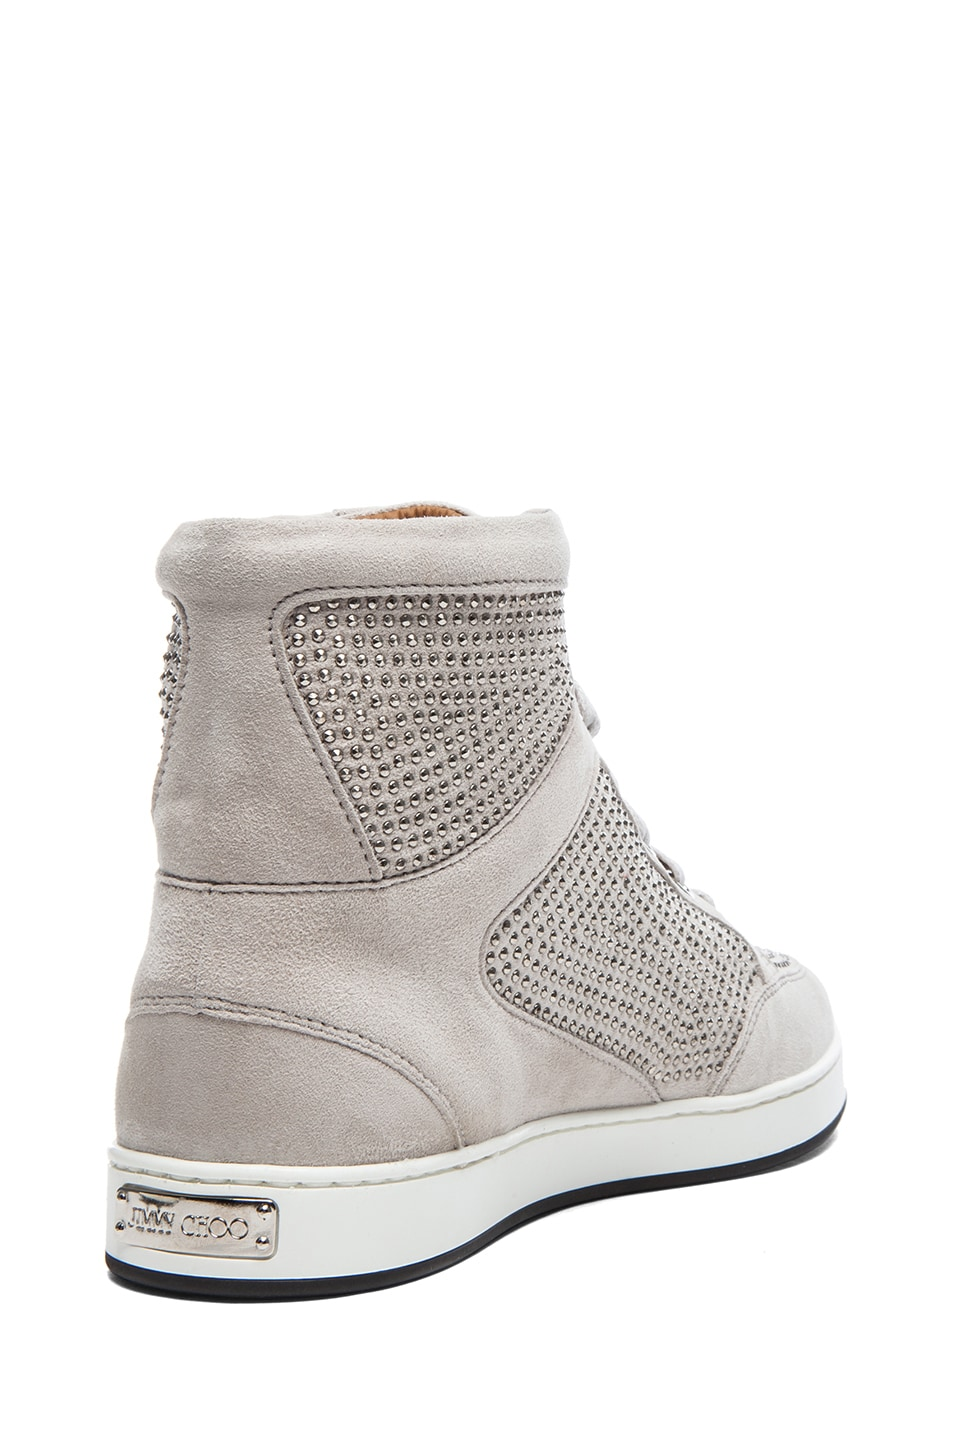 Image 3 of Jimmy Choo Tokyo High Top Suede Trainers in Silver